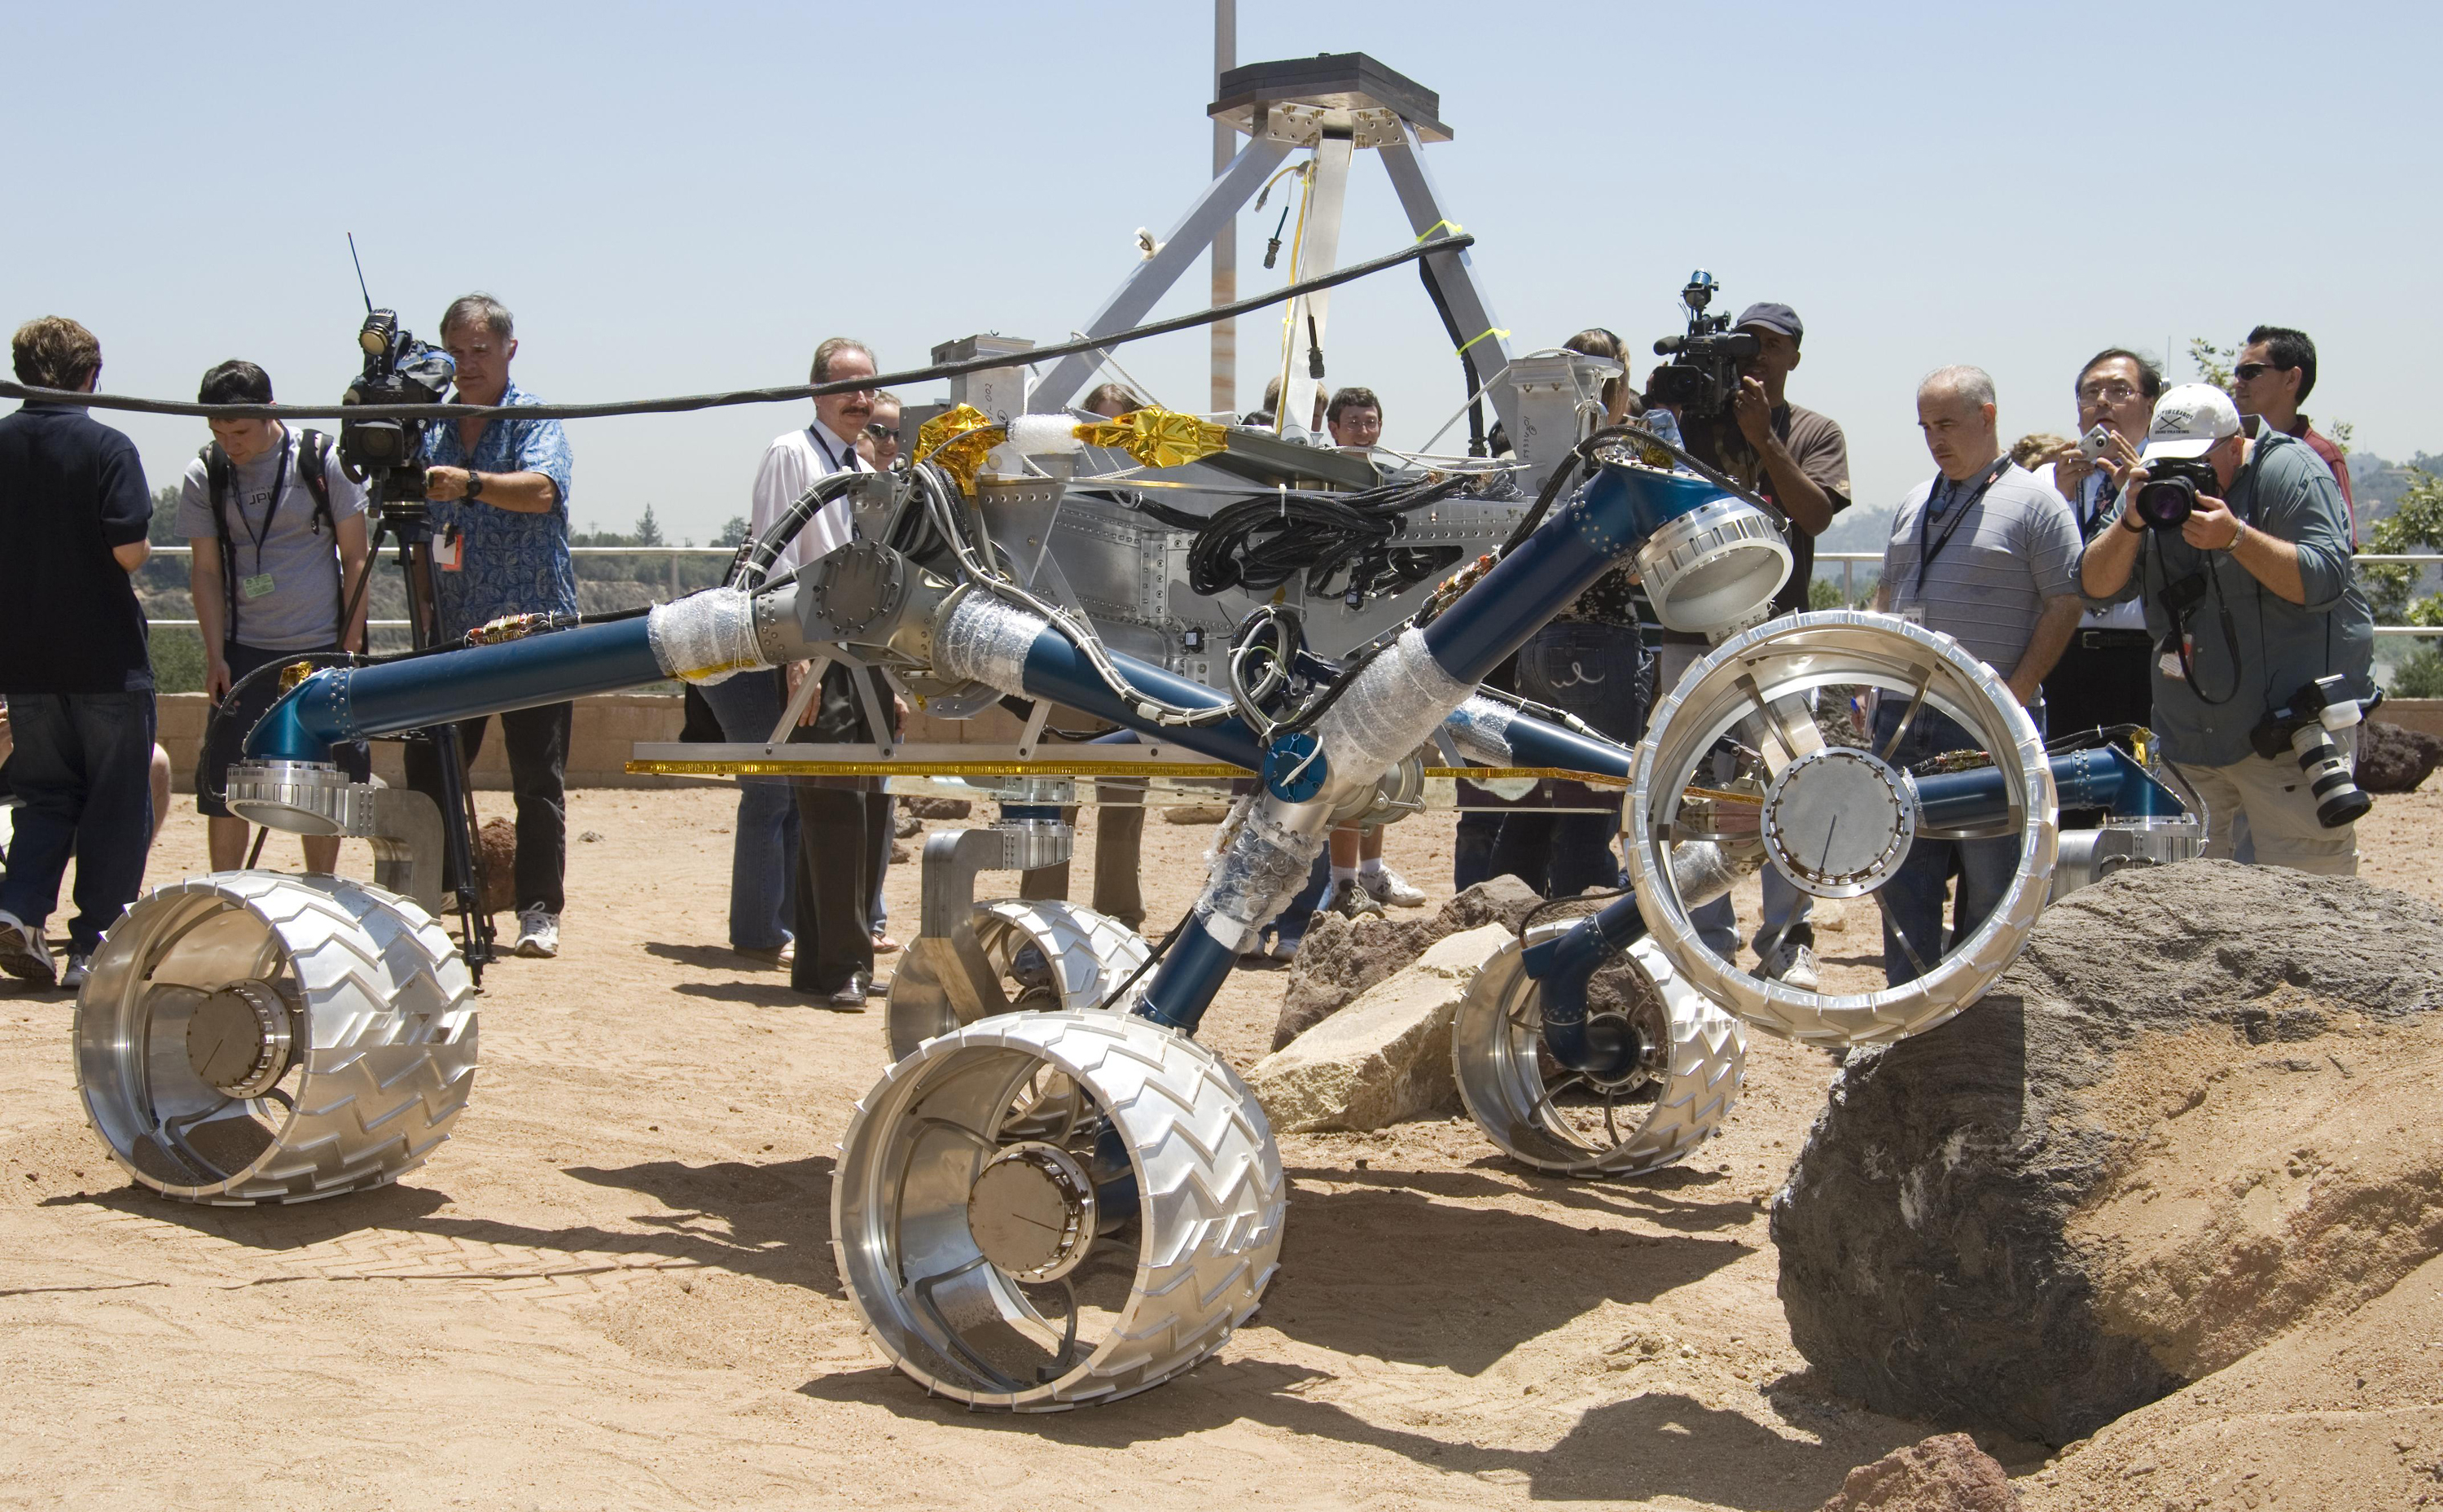 Onlookers watch as Scarecrow, a mobility-testing model for NASA's Mars Science Laboratory, easily conquers boulders in the Mars Yard testing area at NASA's Jet Propulsion Laboratory.